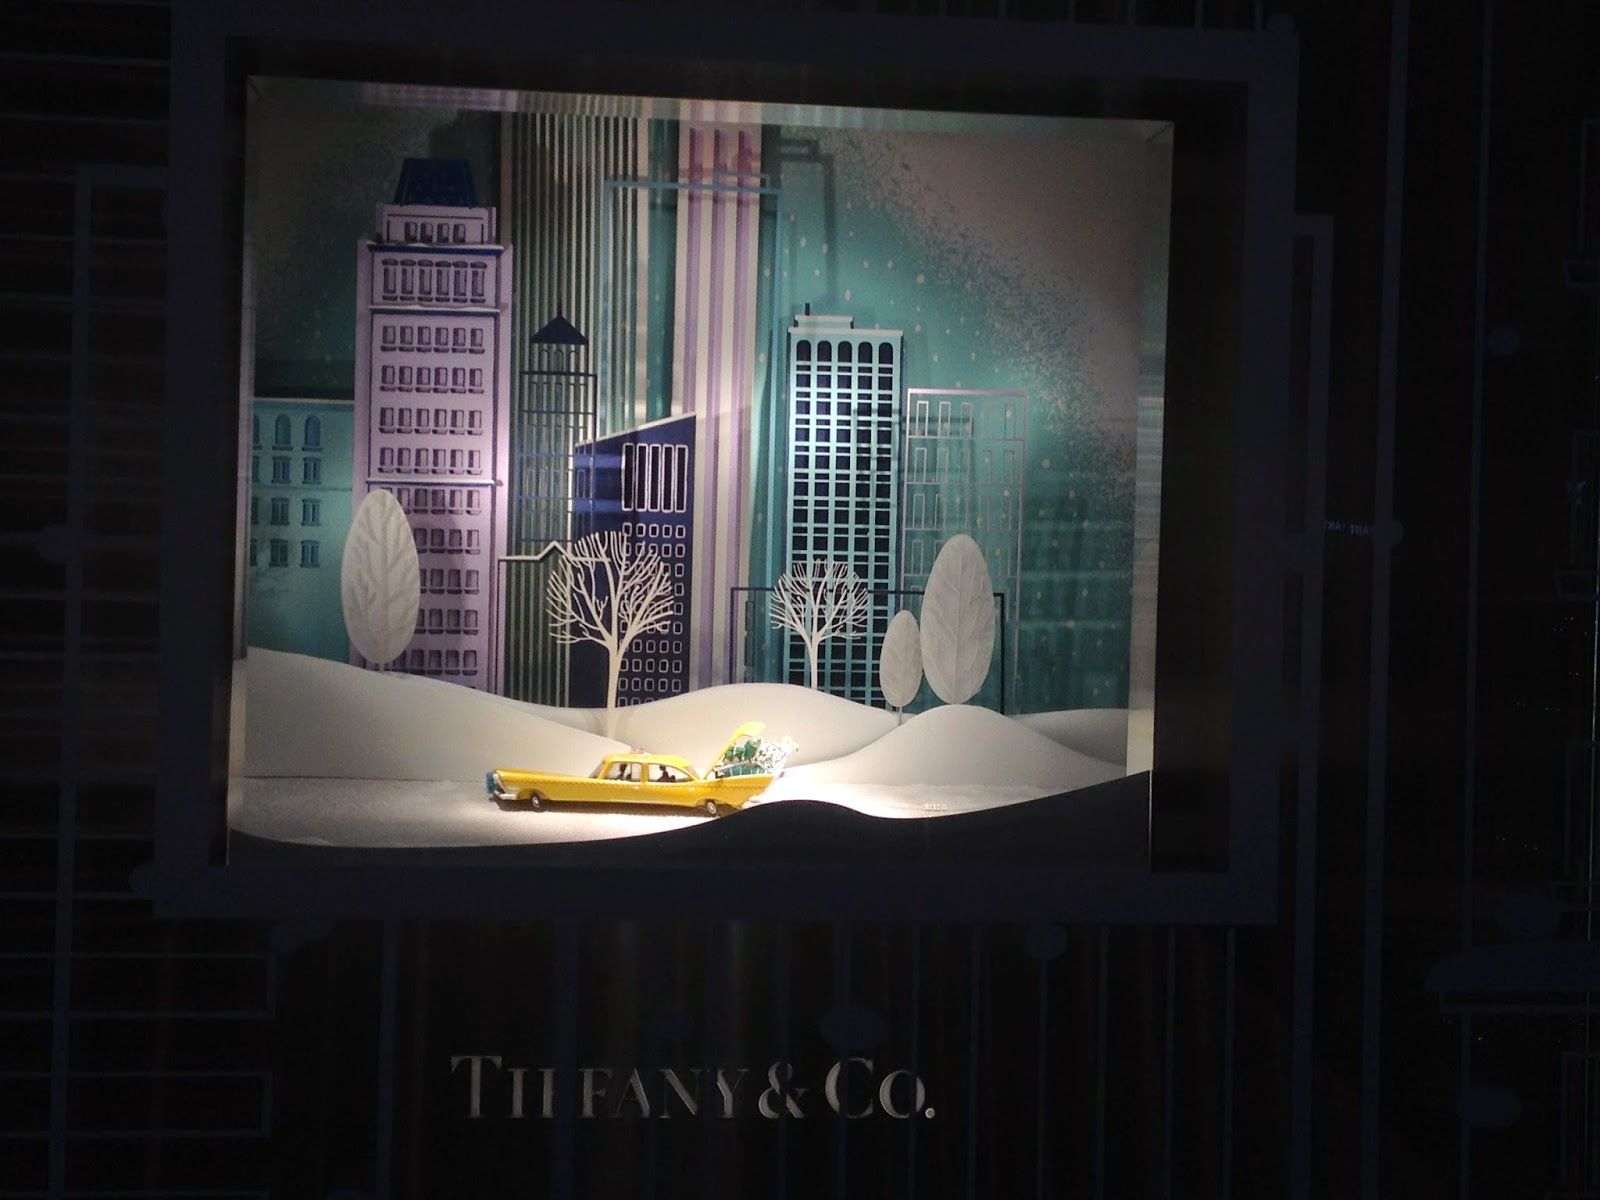 Tiffany & Co. New York themed holiday window, Champs-Elysées, Paris